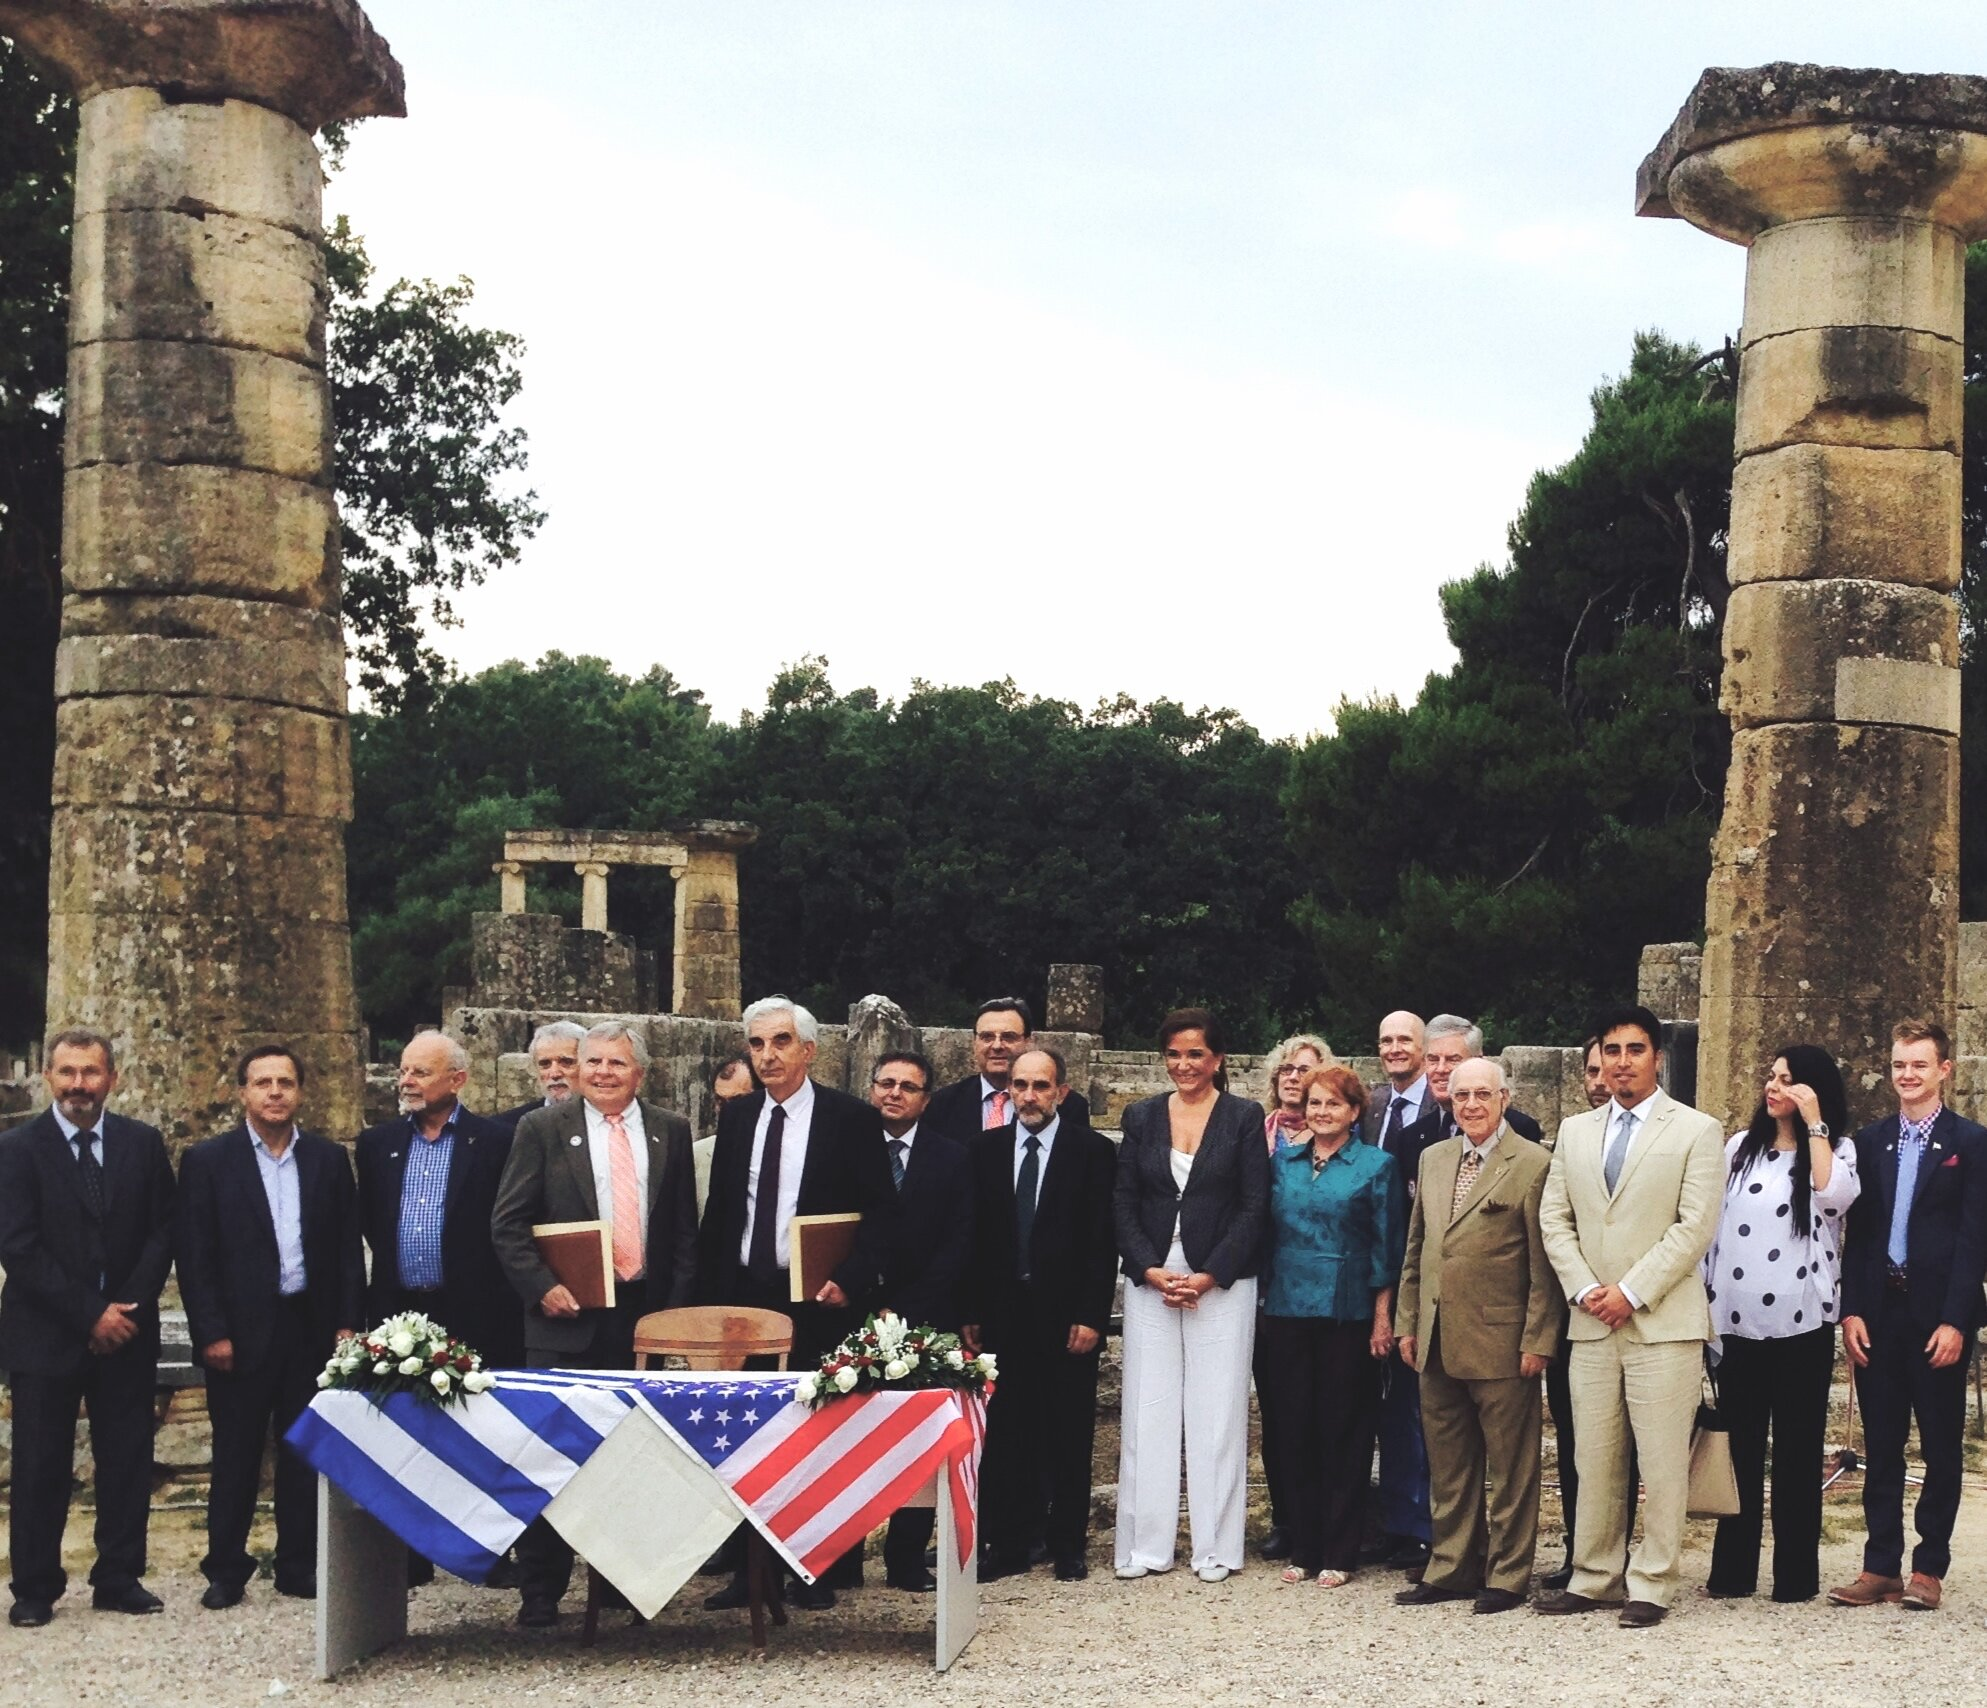 Sister City Ceremony - Ancient Olympia, Greece, Spring 2014